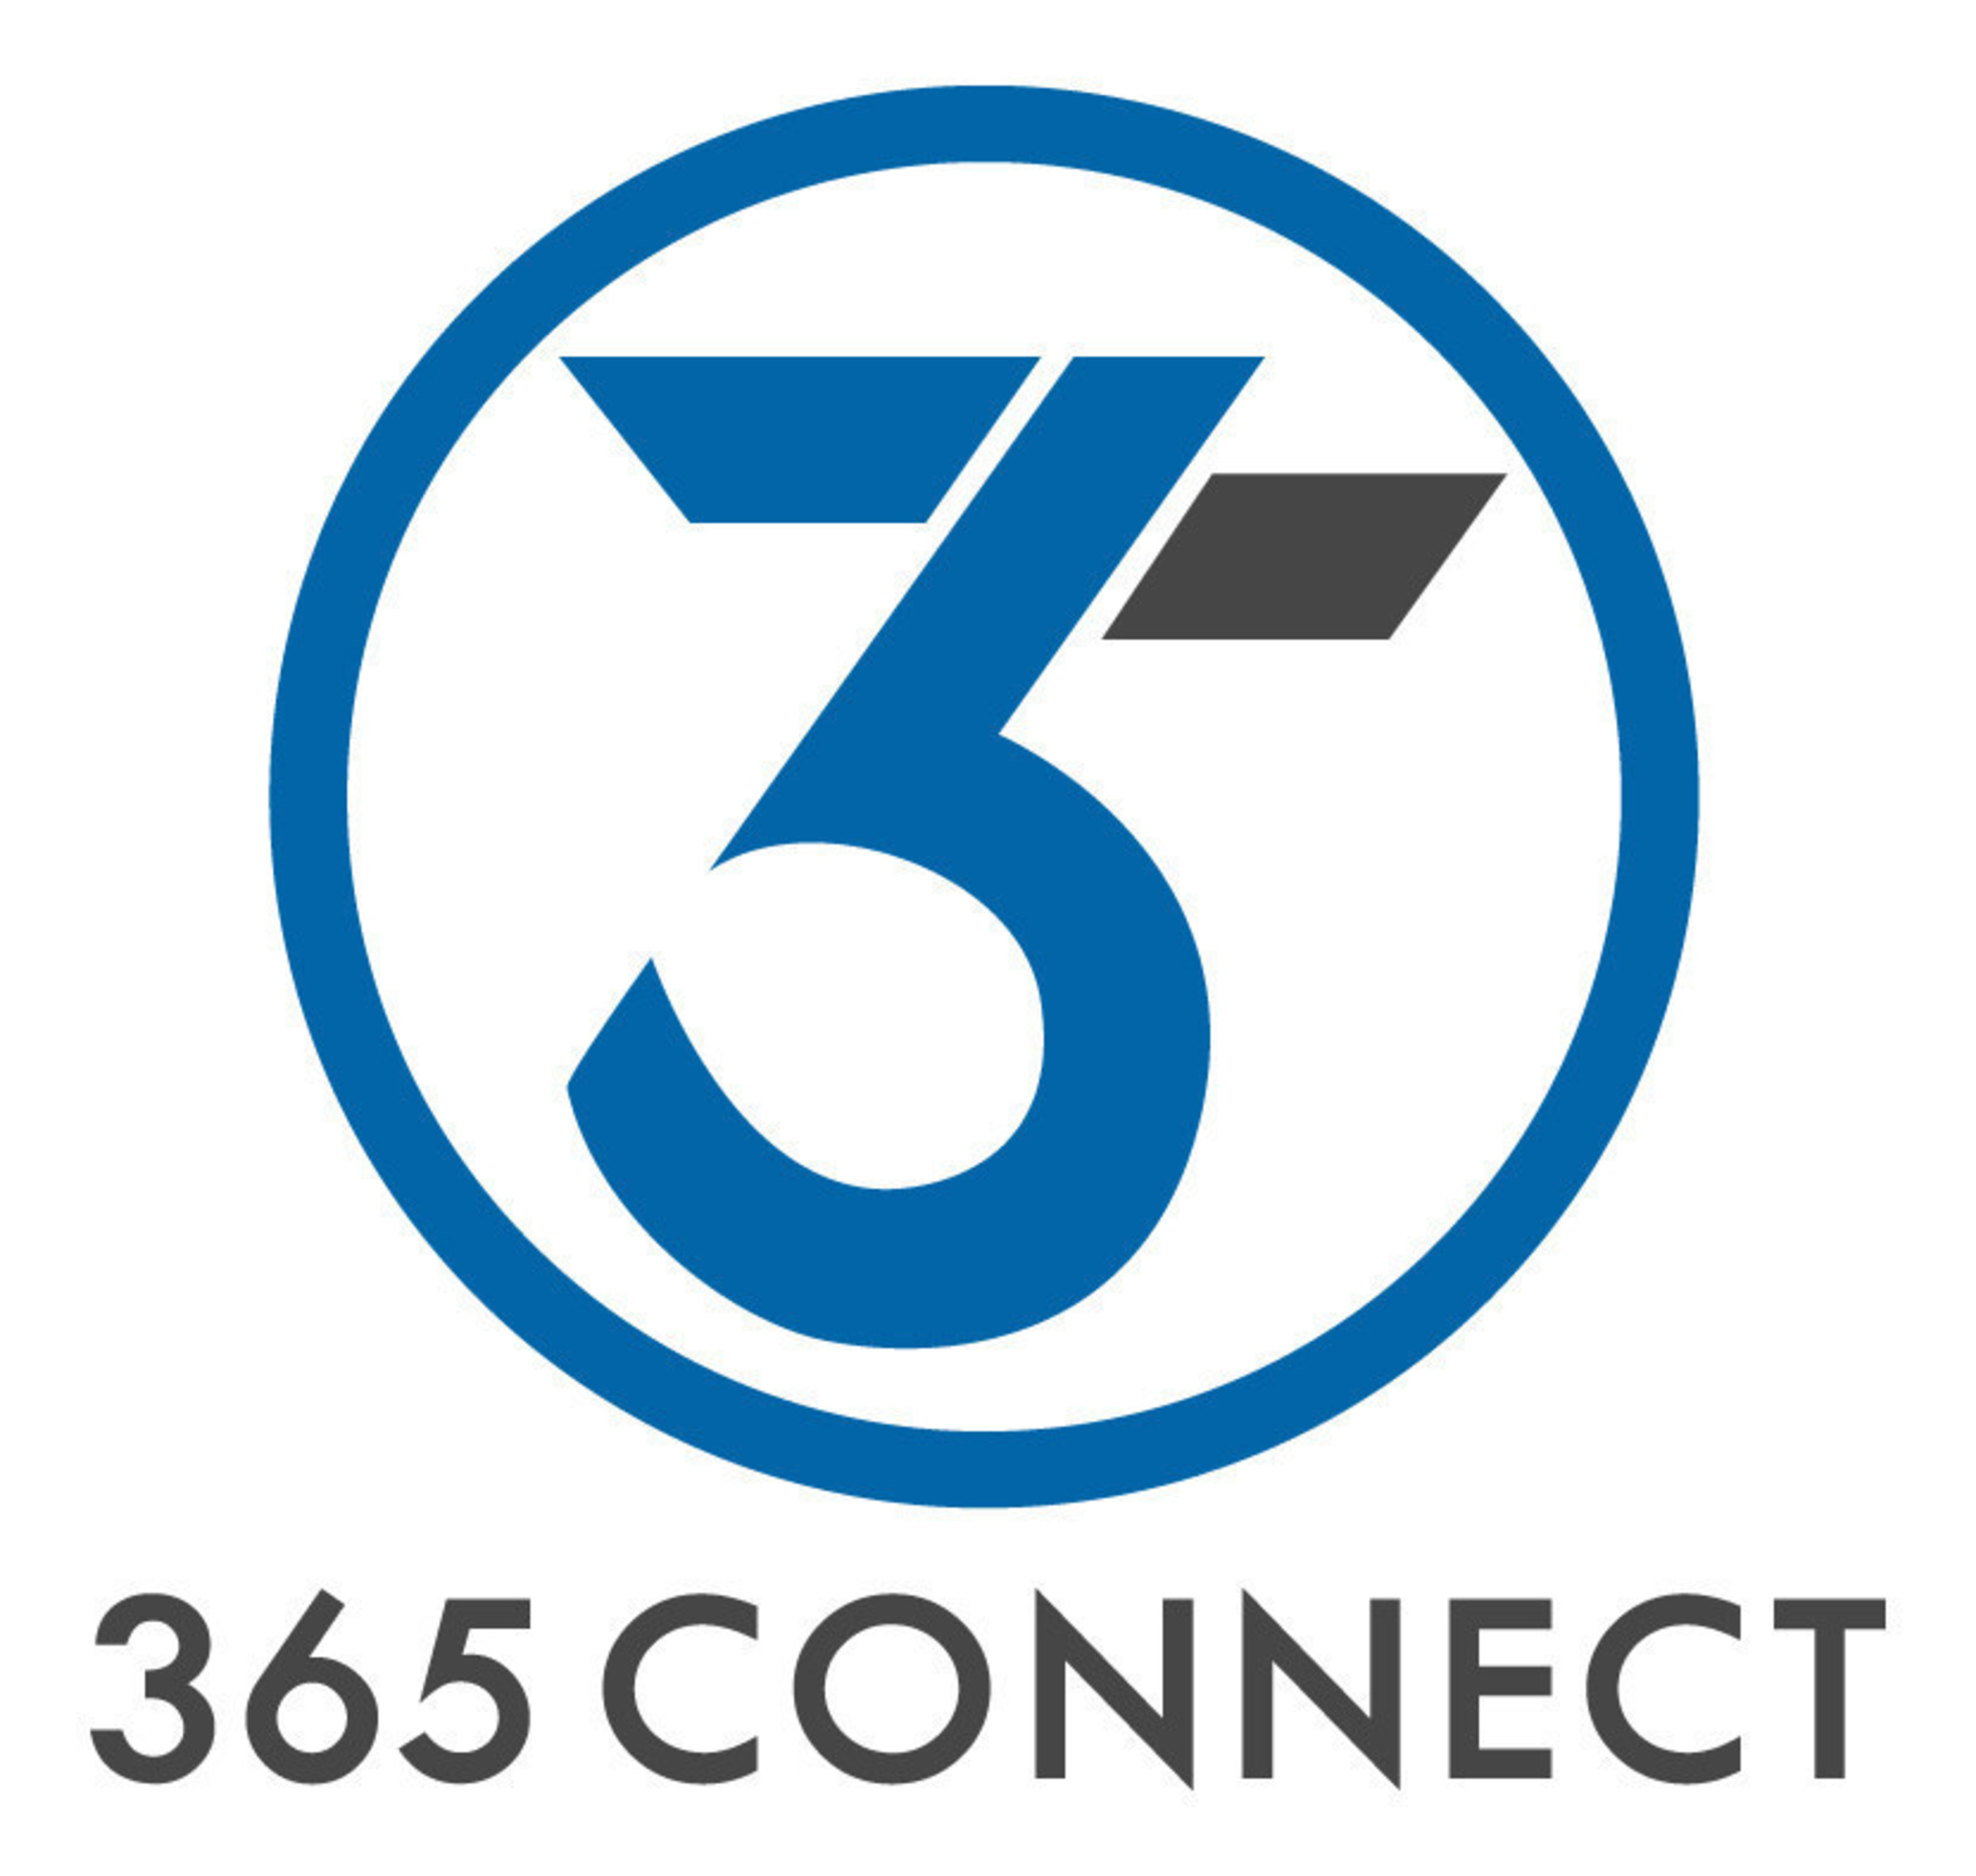 365 Connect to Participate at National Multifamily Housing Council 2015 OPTECH Conference in San